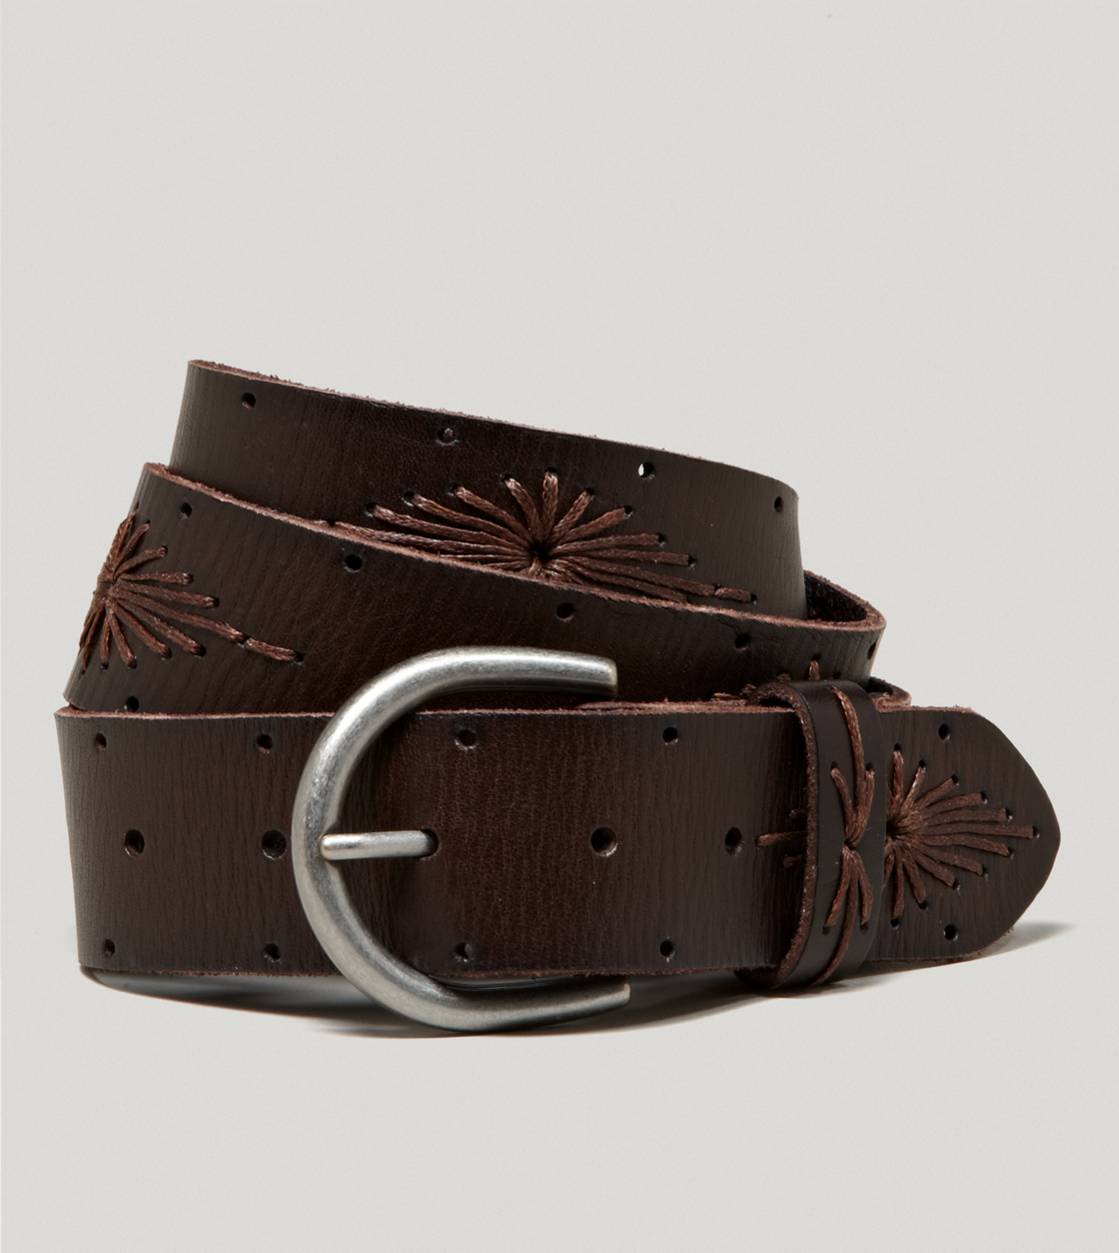 aeo embroidered leather belt american from american eagle